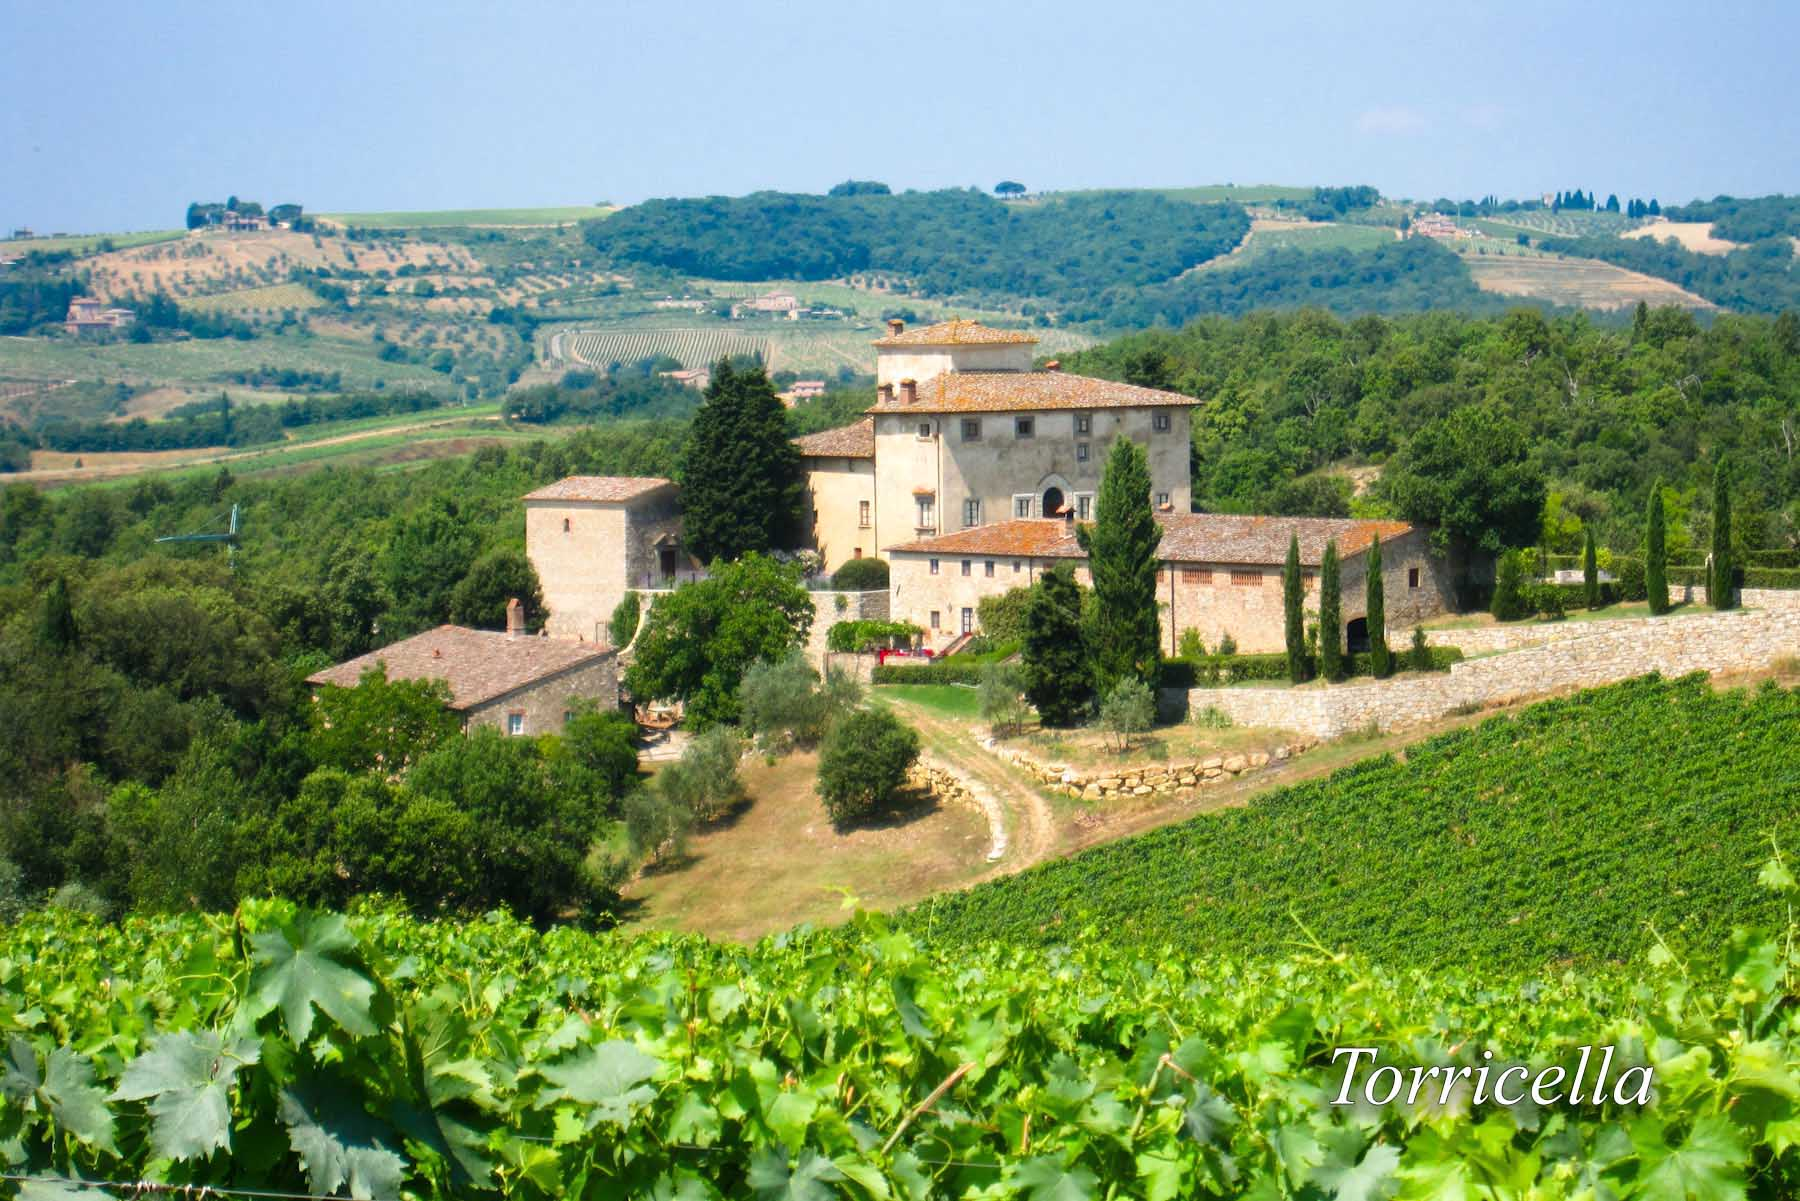 Torricella - Best places to visit in Tuscany